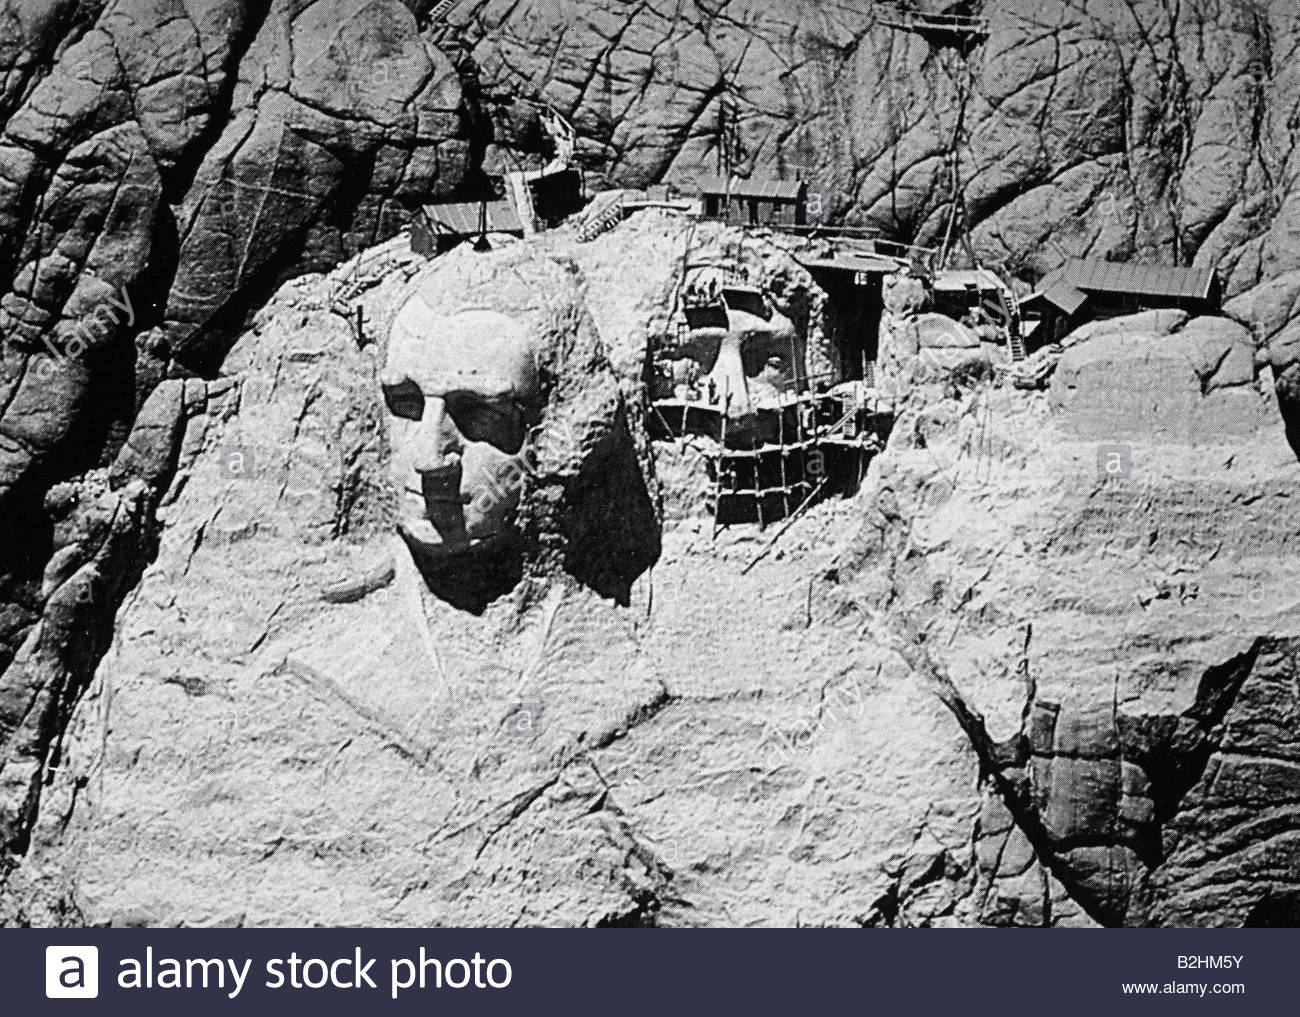 Worksheet Building Mount Rushmore geography travel usa south dakota mount rushmore national stock photo memorial building of monument built by john gutzon de